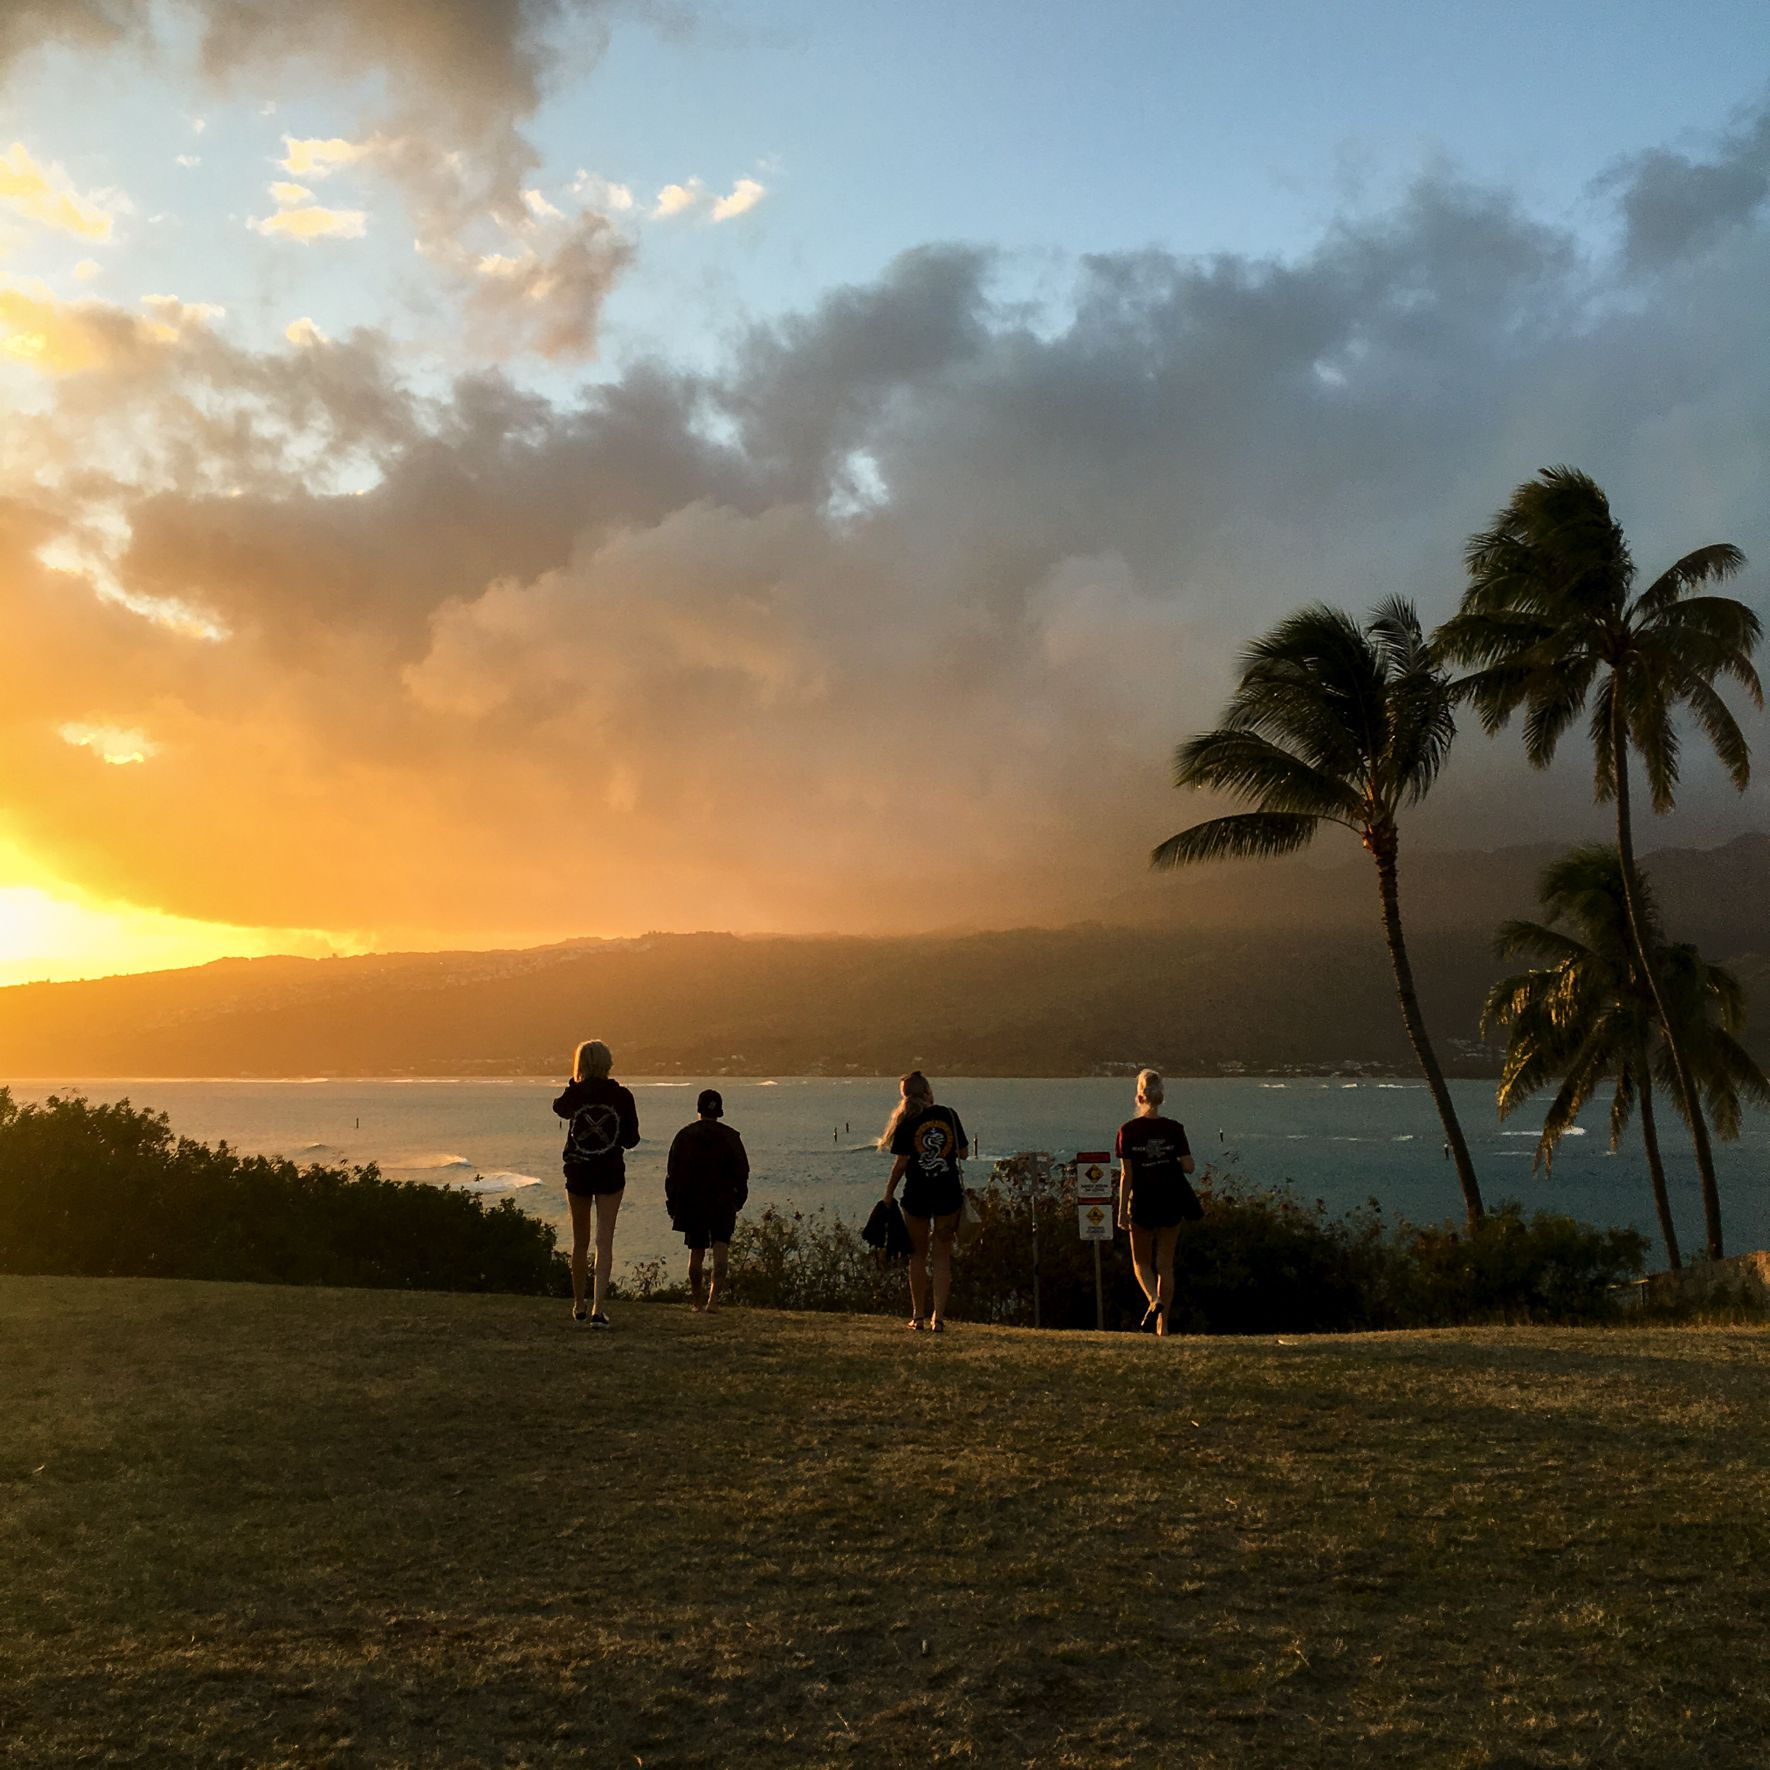 Steen-Jones-Artist-Travel-Hawaii-30th-02.jpg